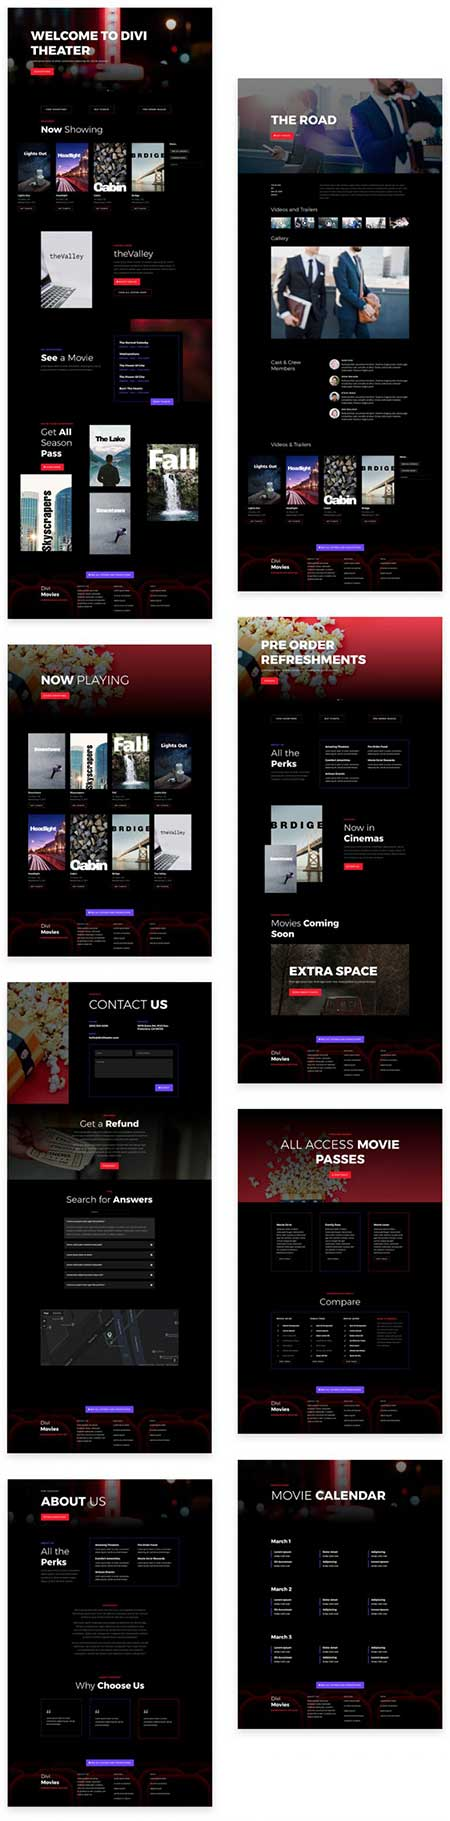 Divi layout pack for cinema website